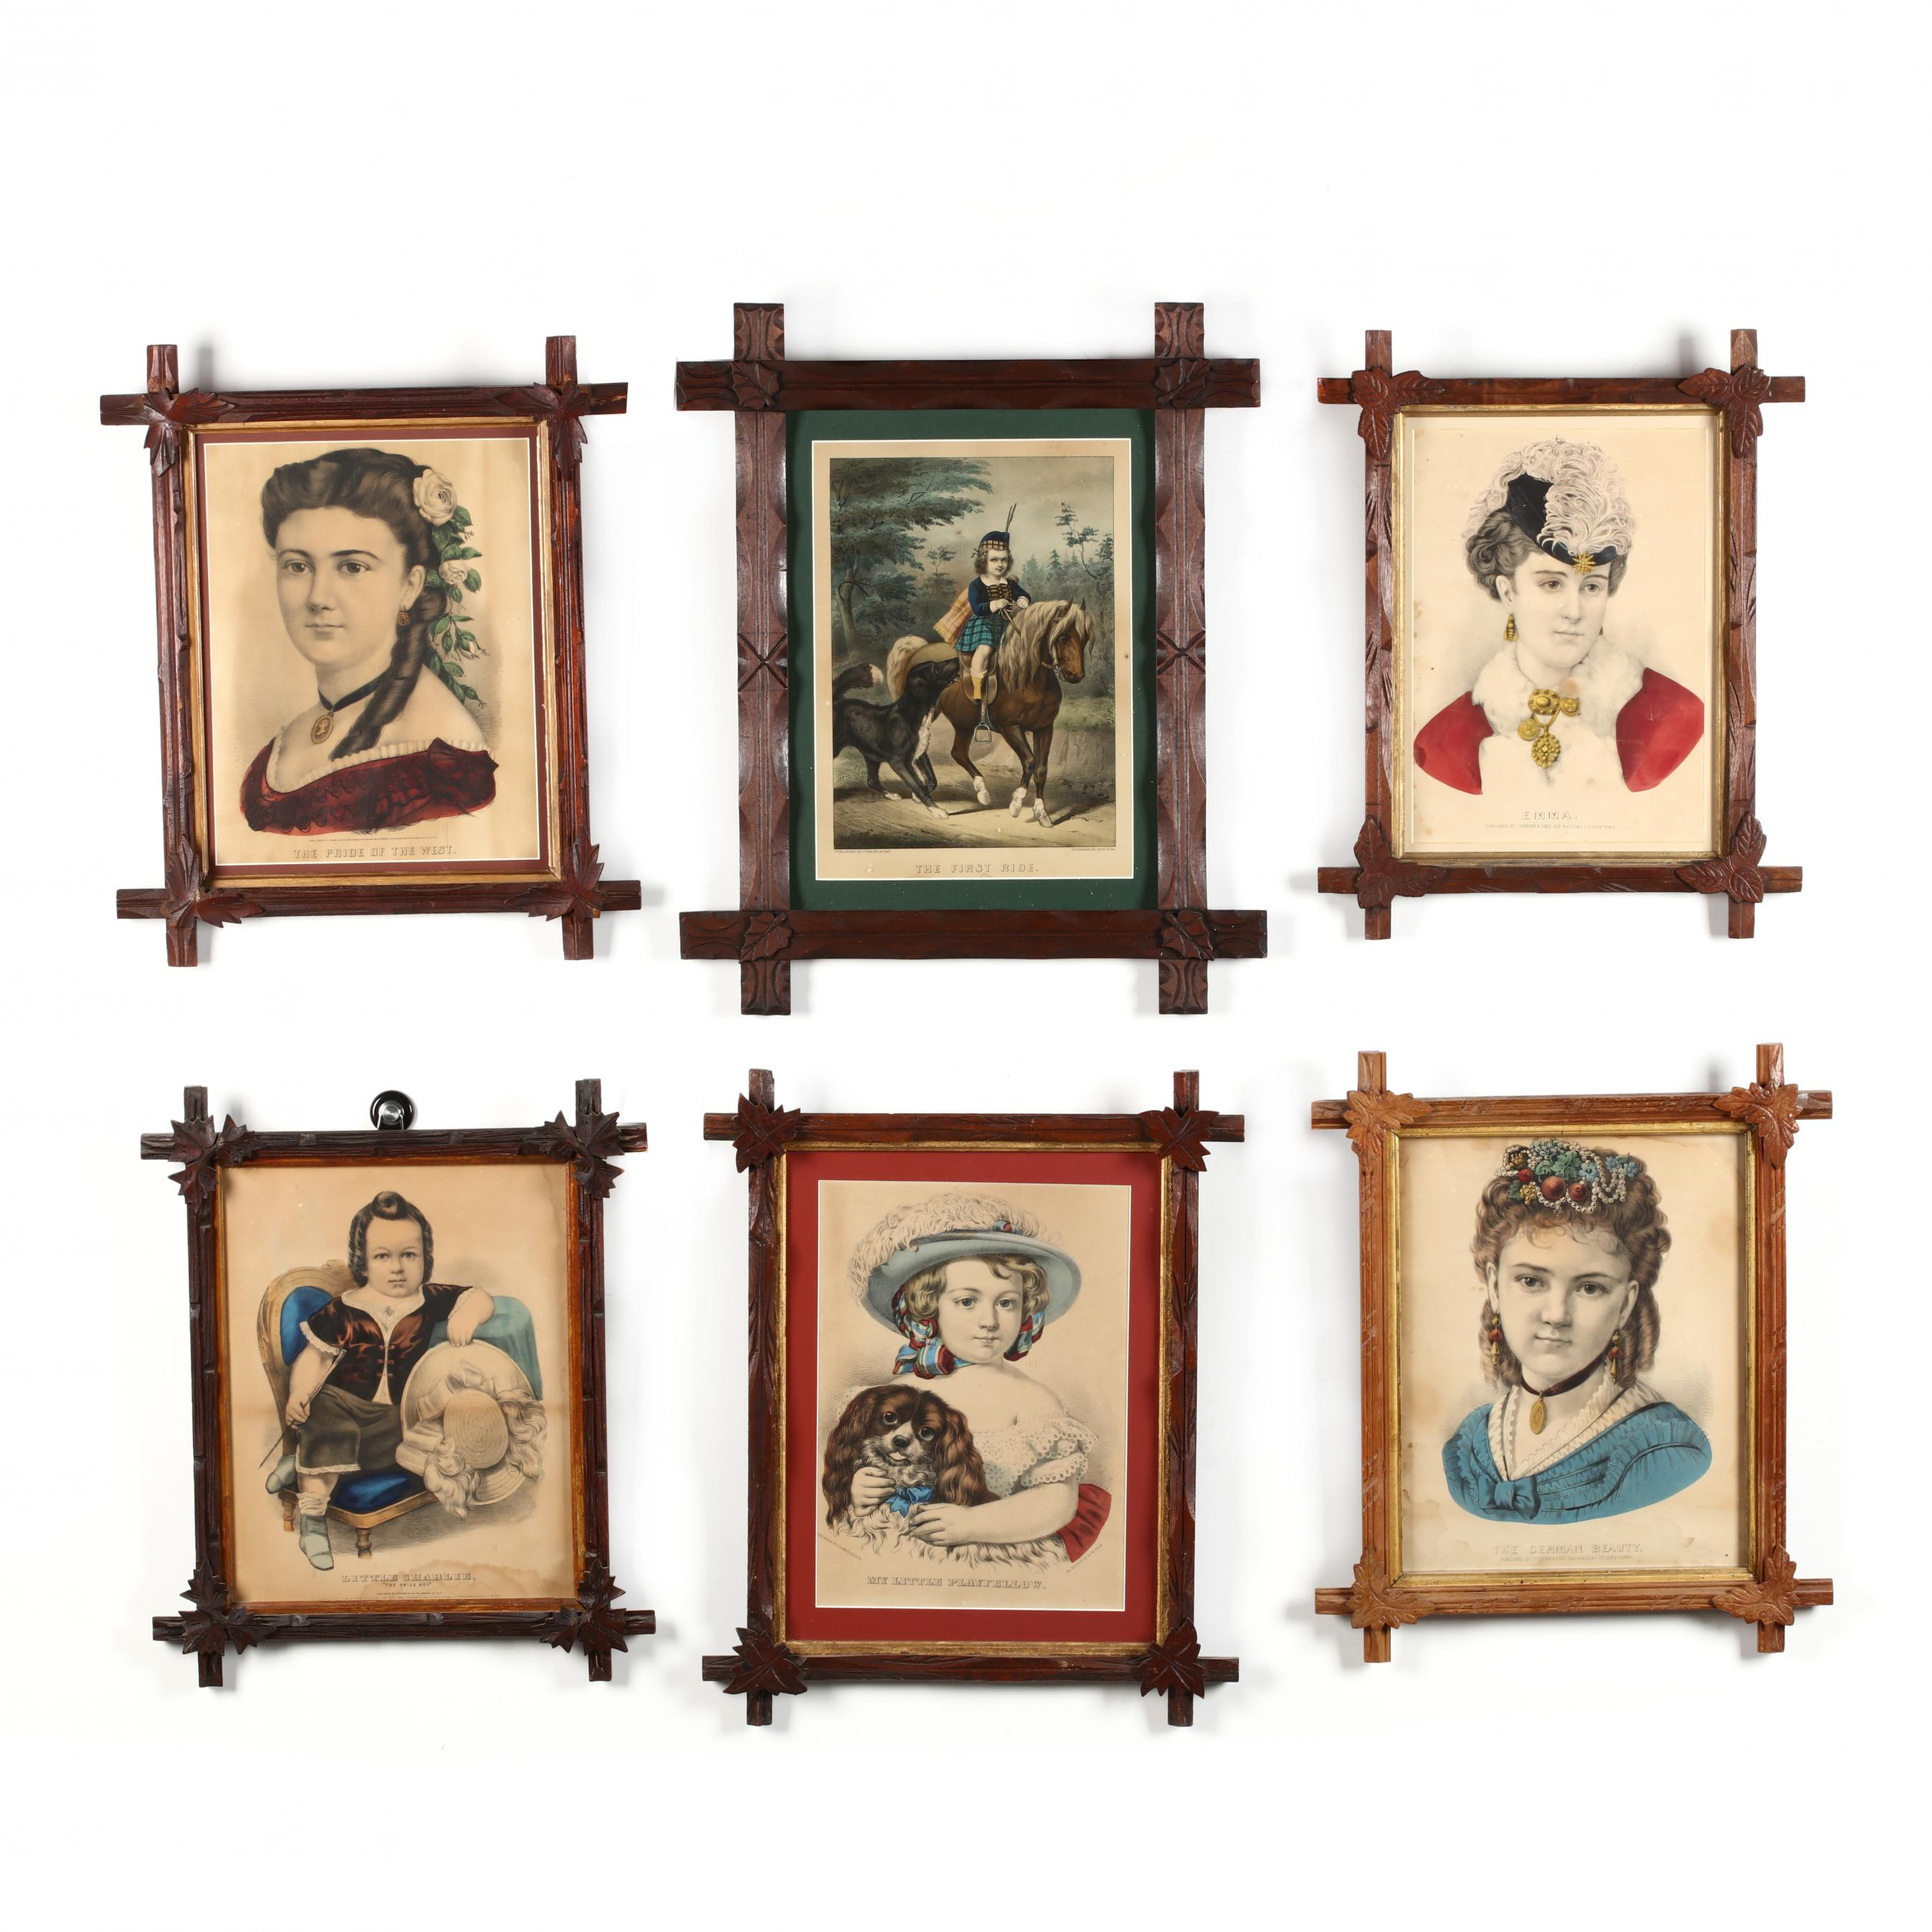 six-currier-ives-portrait-prints-in-antique-framing